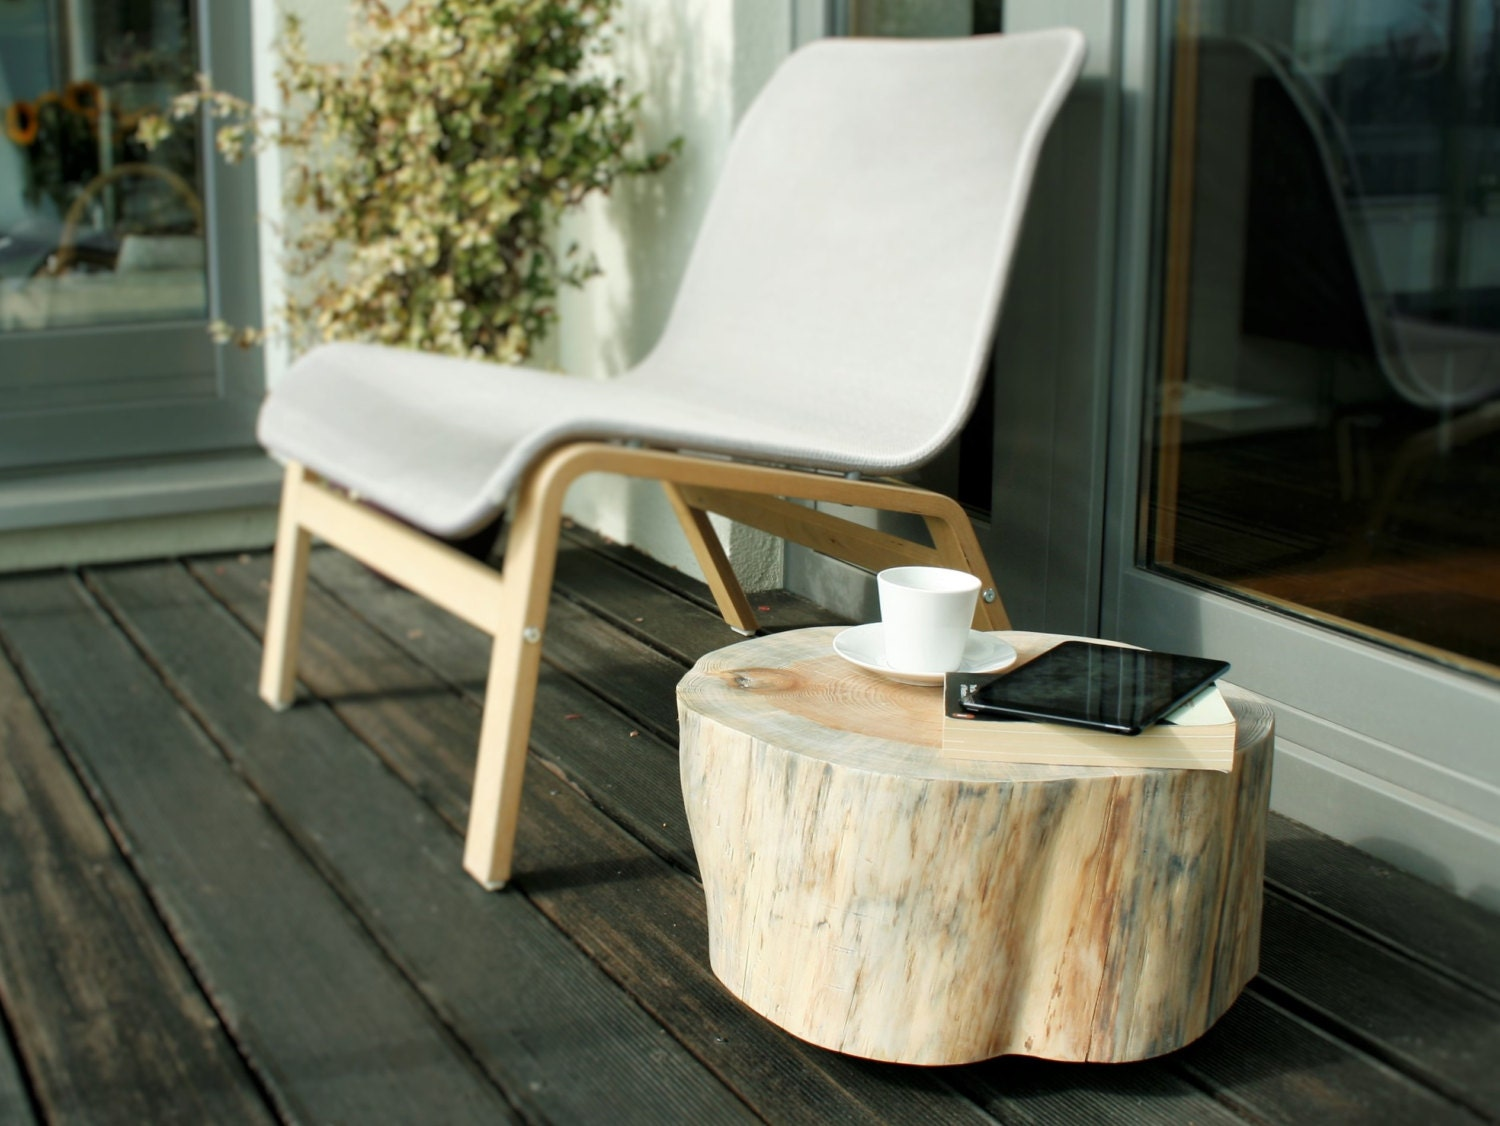 In Legno Wood Design wooden stump table trunk side table tree trunk rolling